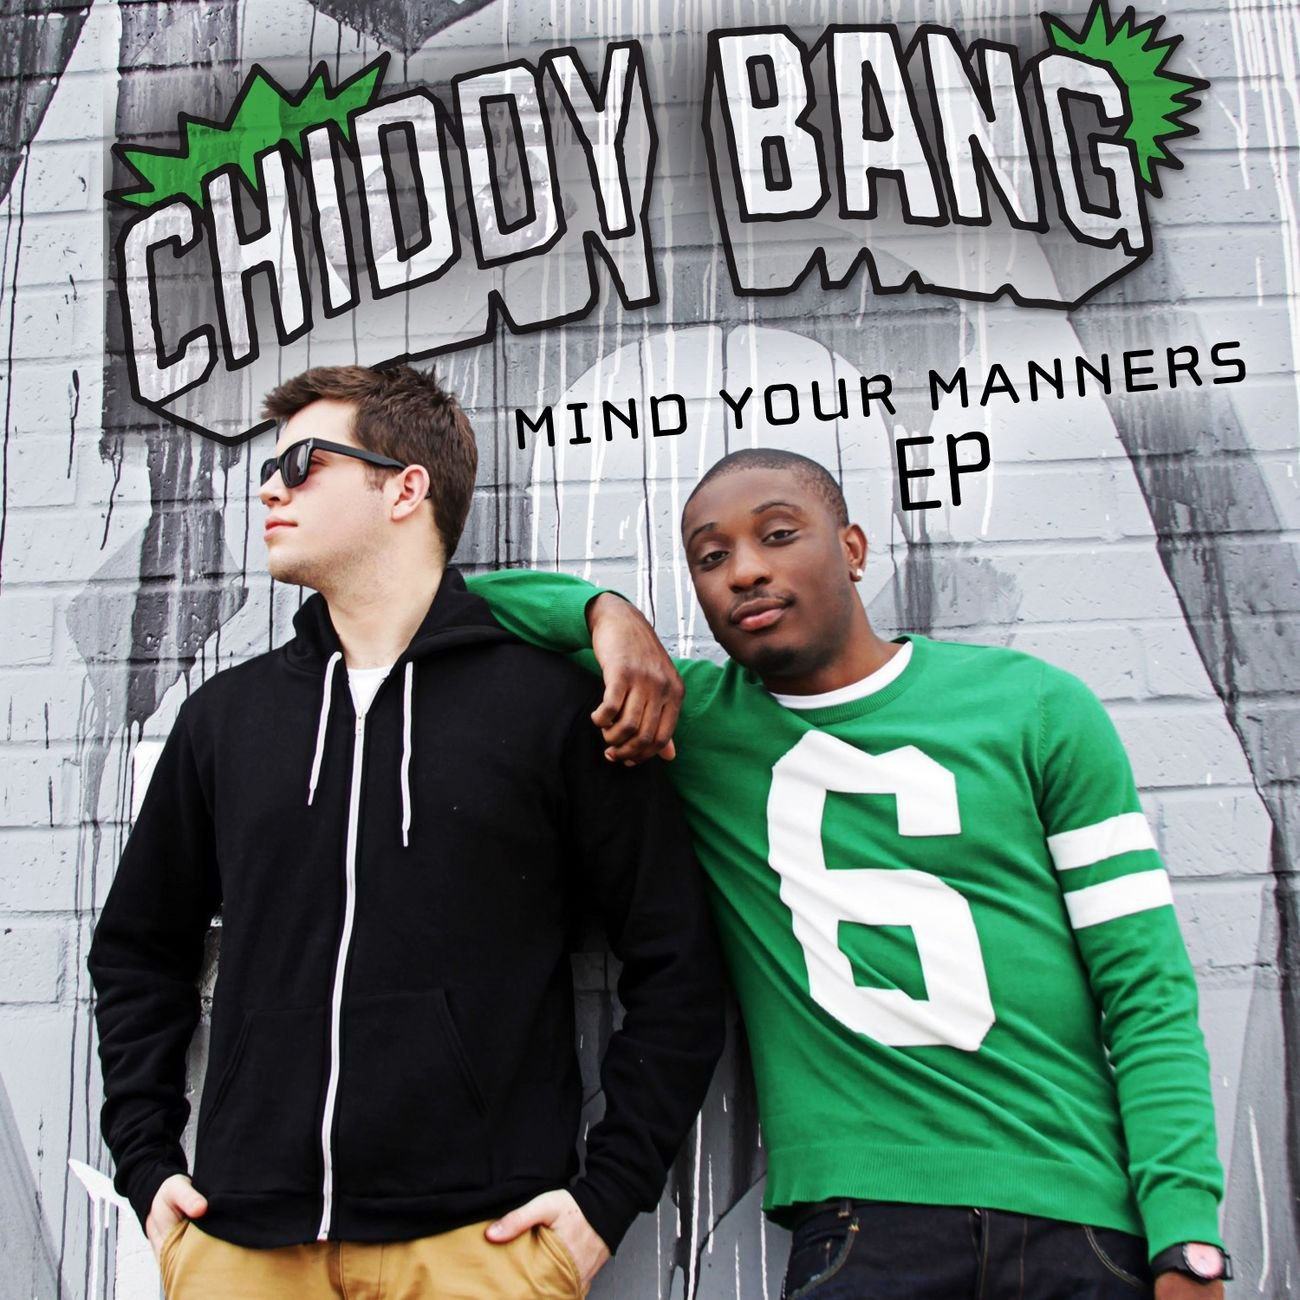 Chiddy Bang album Mind Your Manners EP